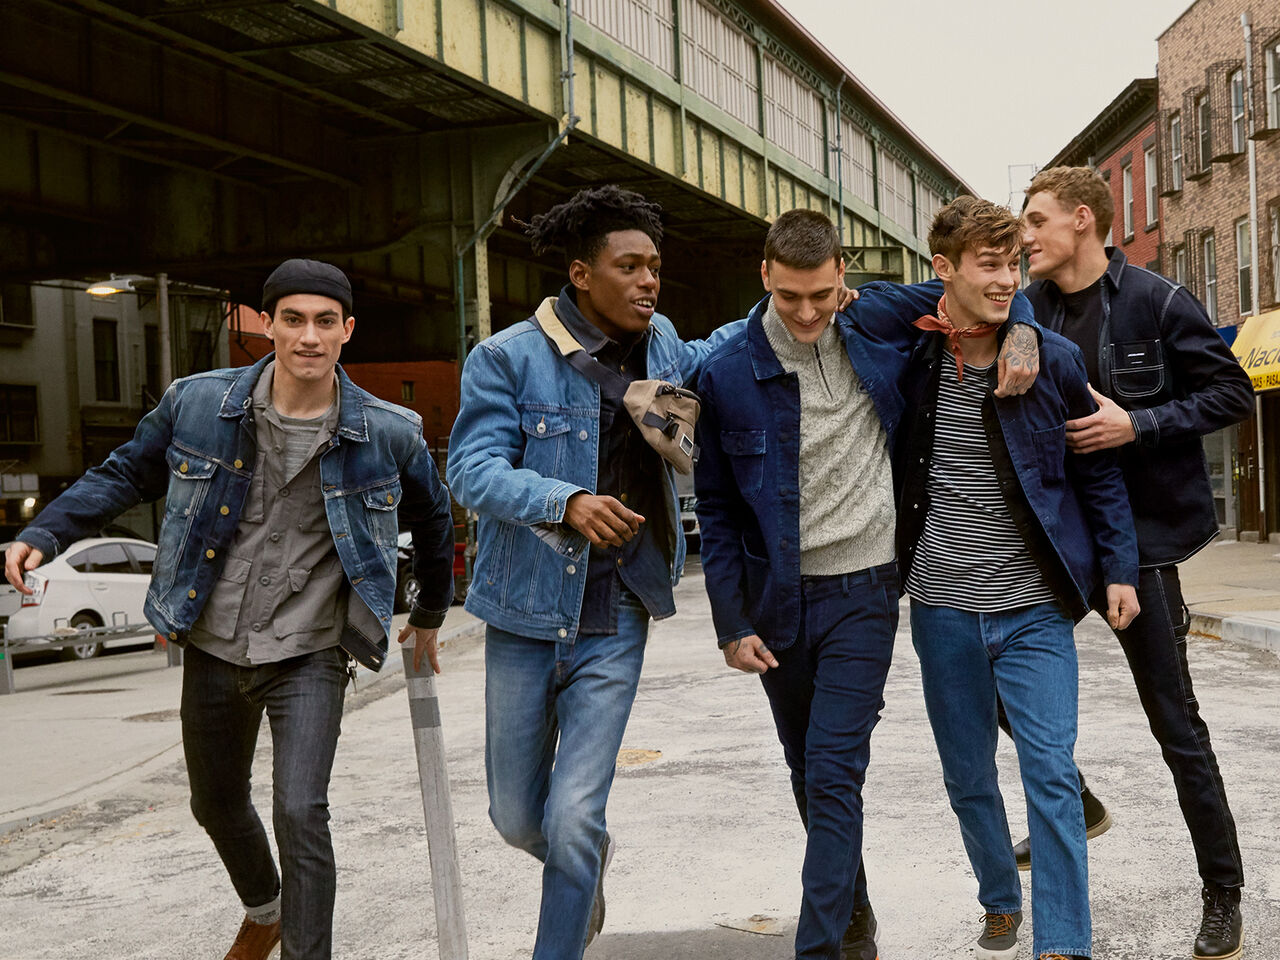 wholesale price half off latest fashion JACK & JONES - Select your country